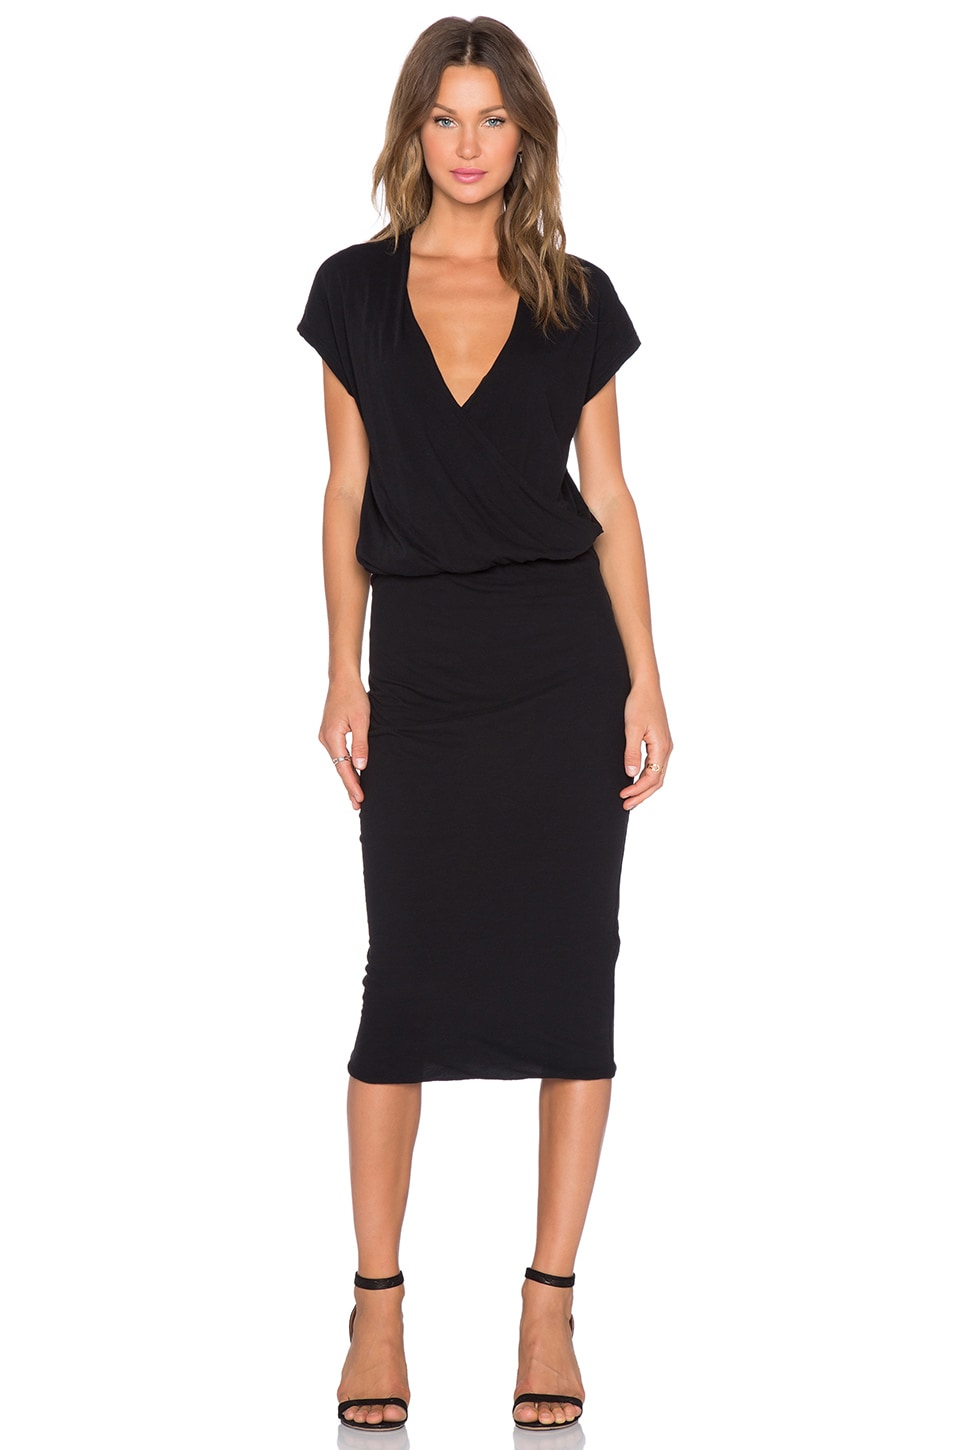 James Perse Sleeveless Wrap Dress in Black